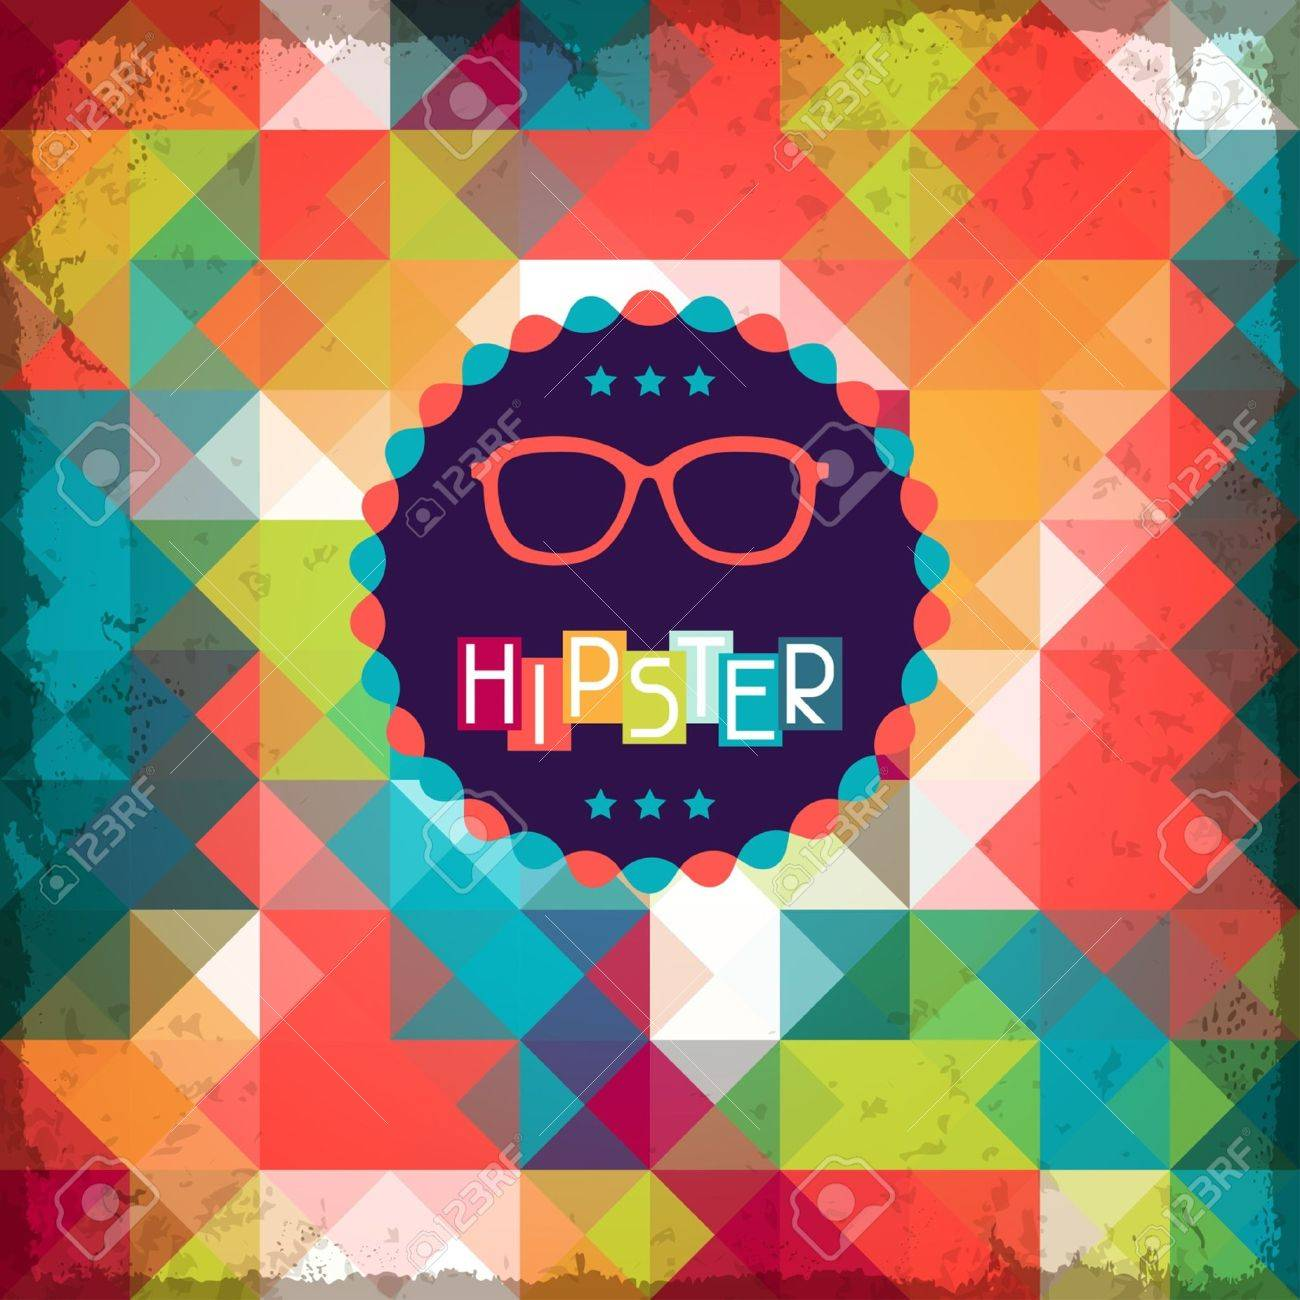 Hipster background in retro style. Stock Vector - 20913528